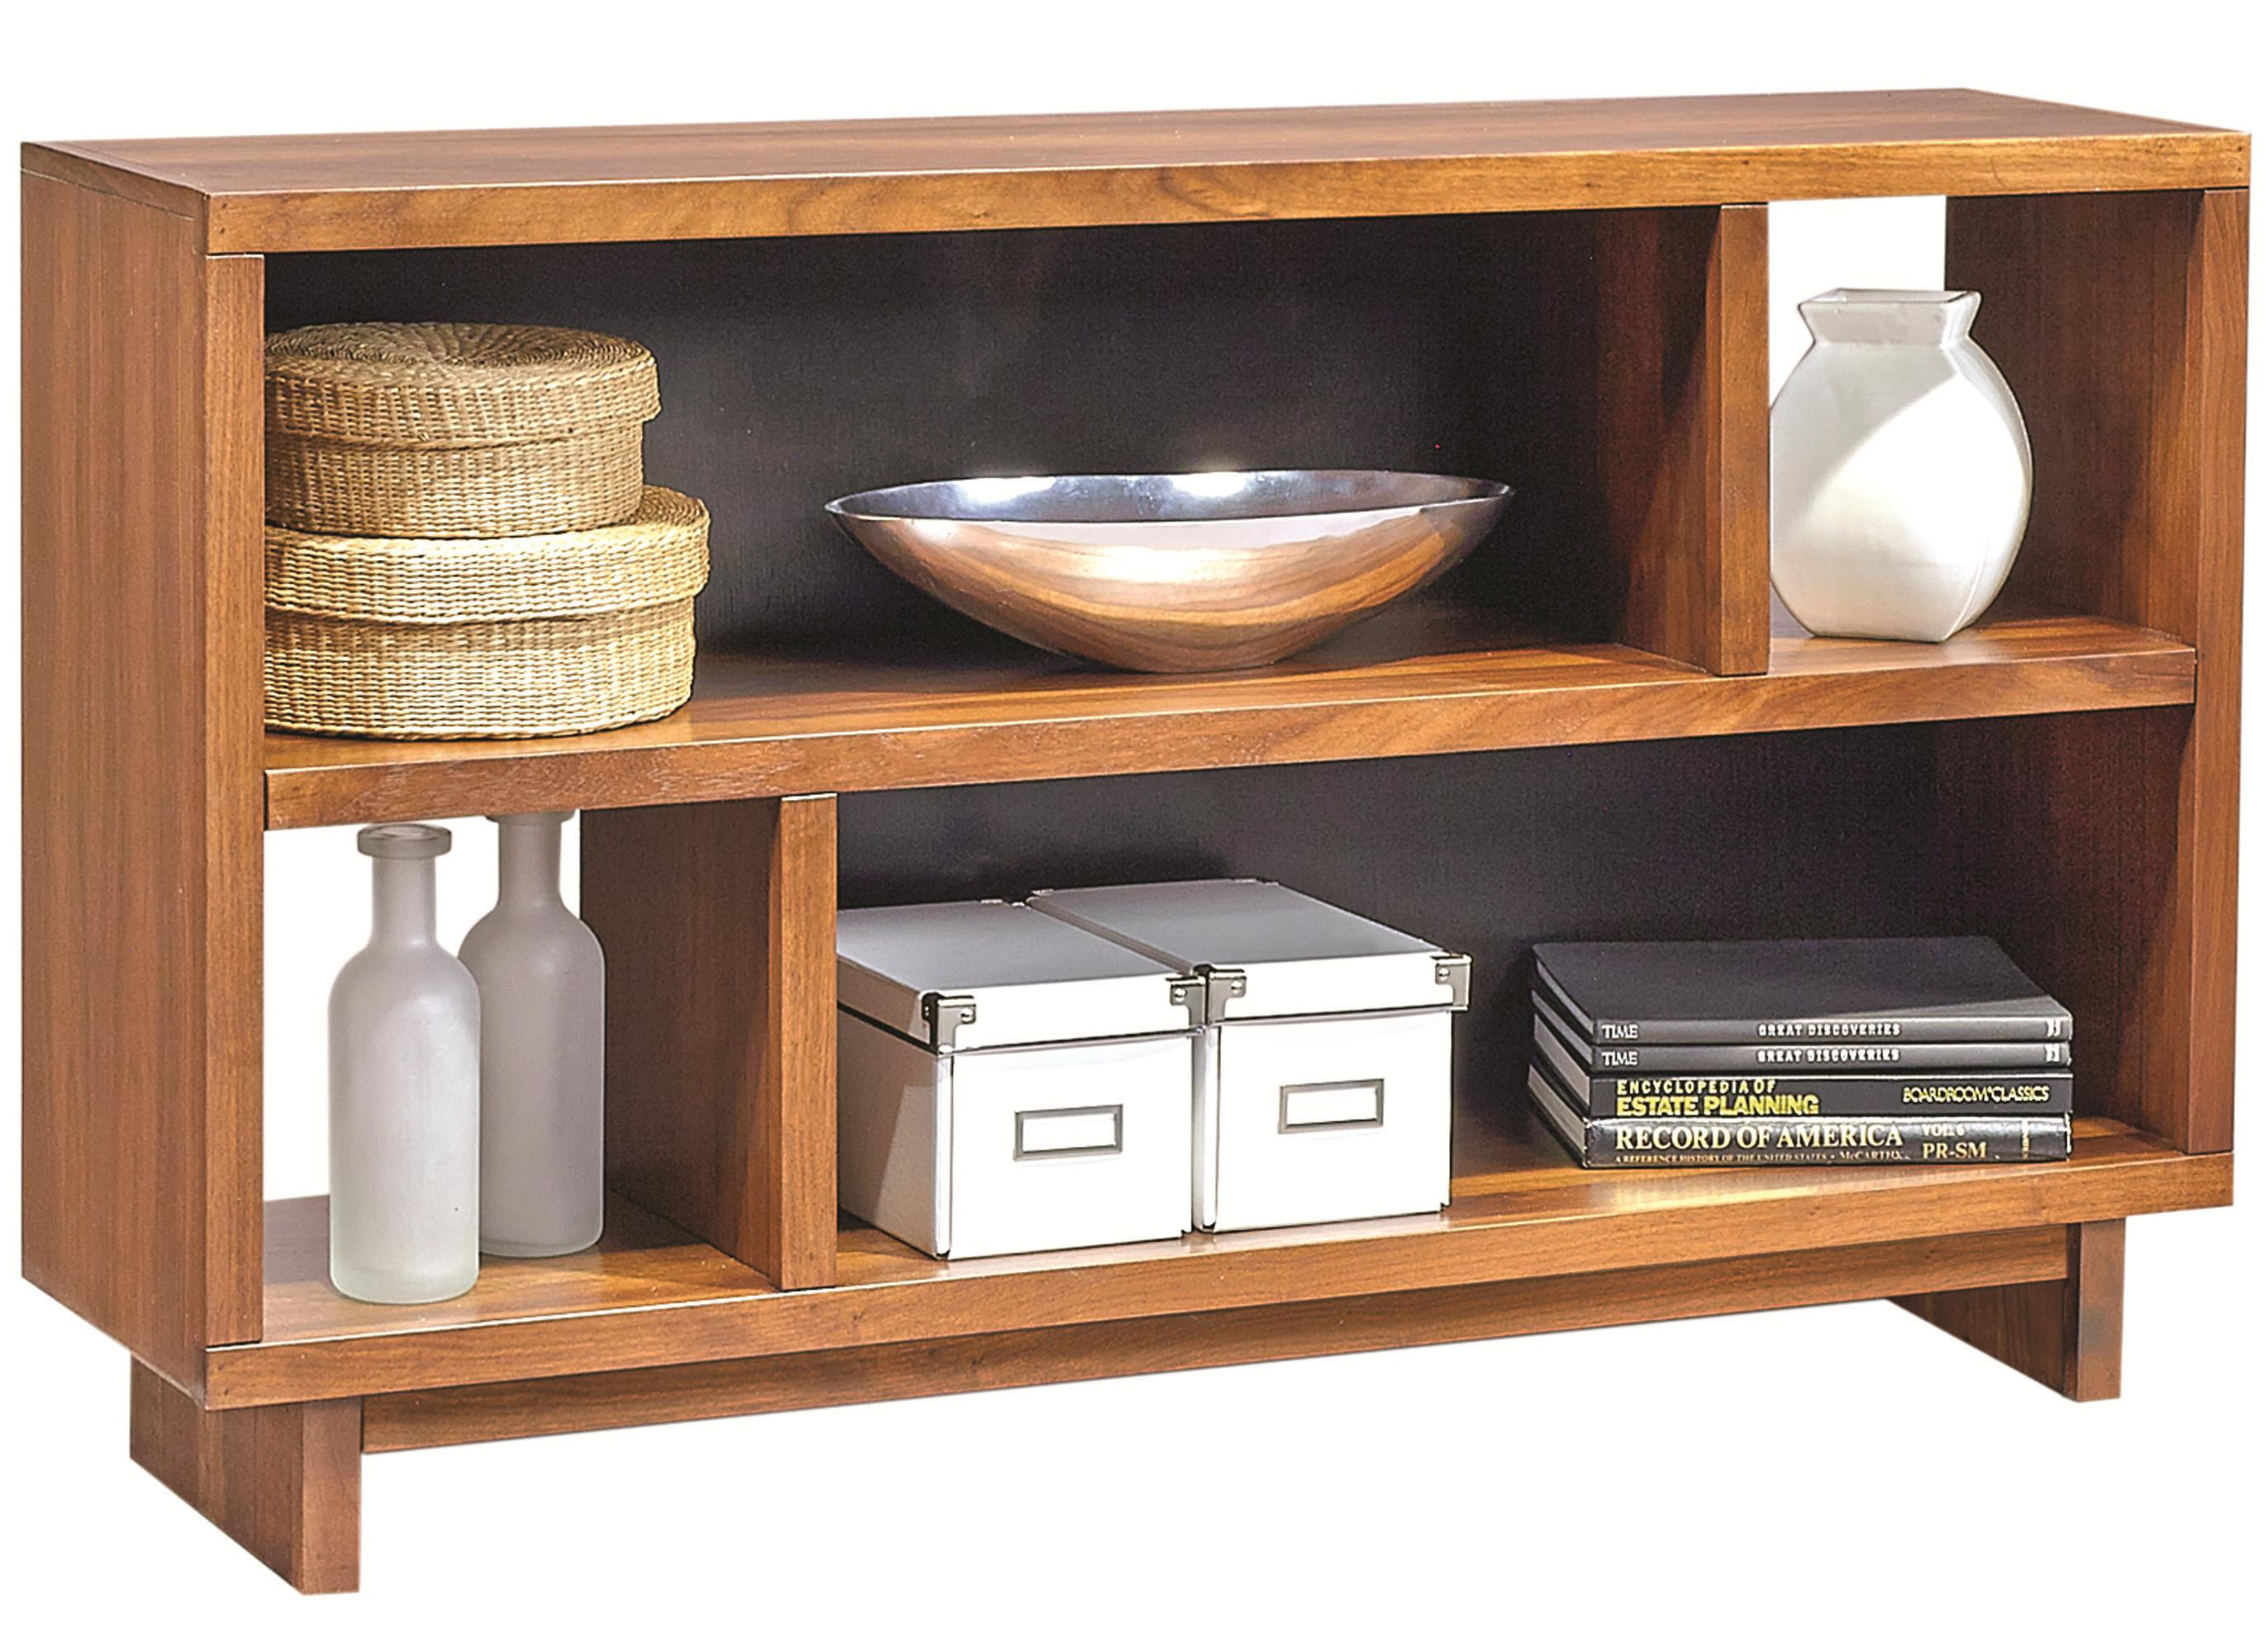 Aspenhome Walnut Heights Console Table - Item Number: WH916-AMB